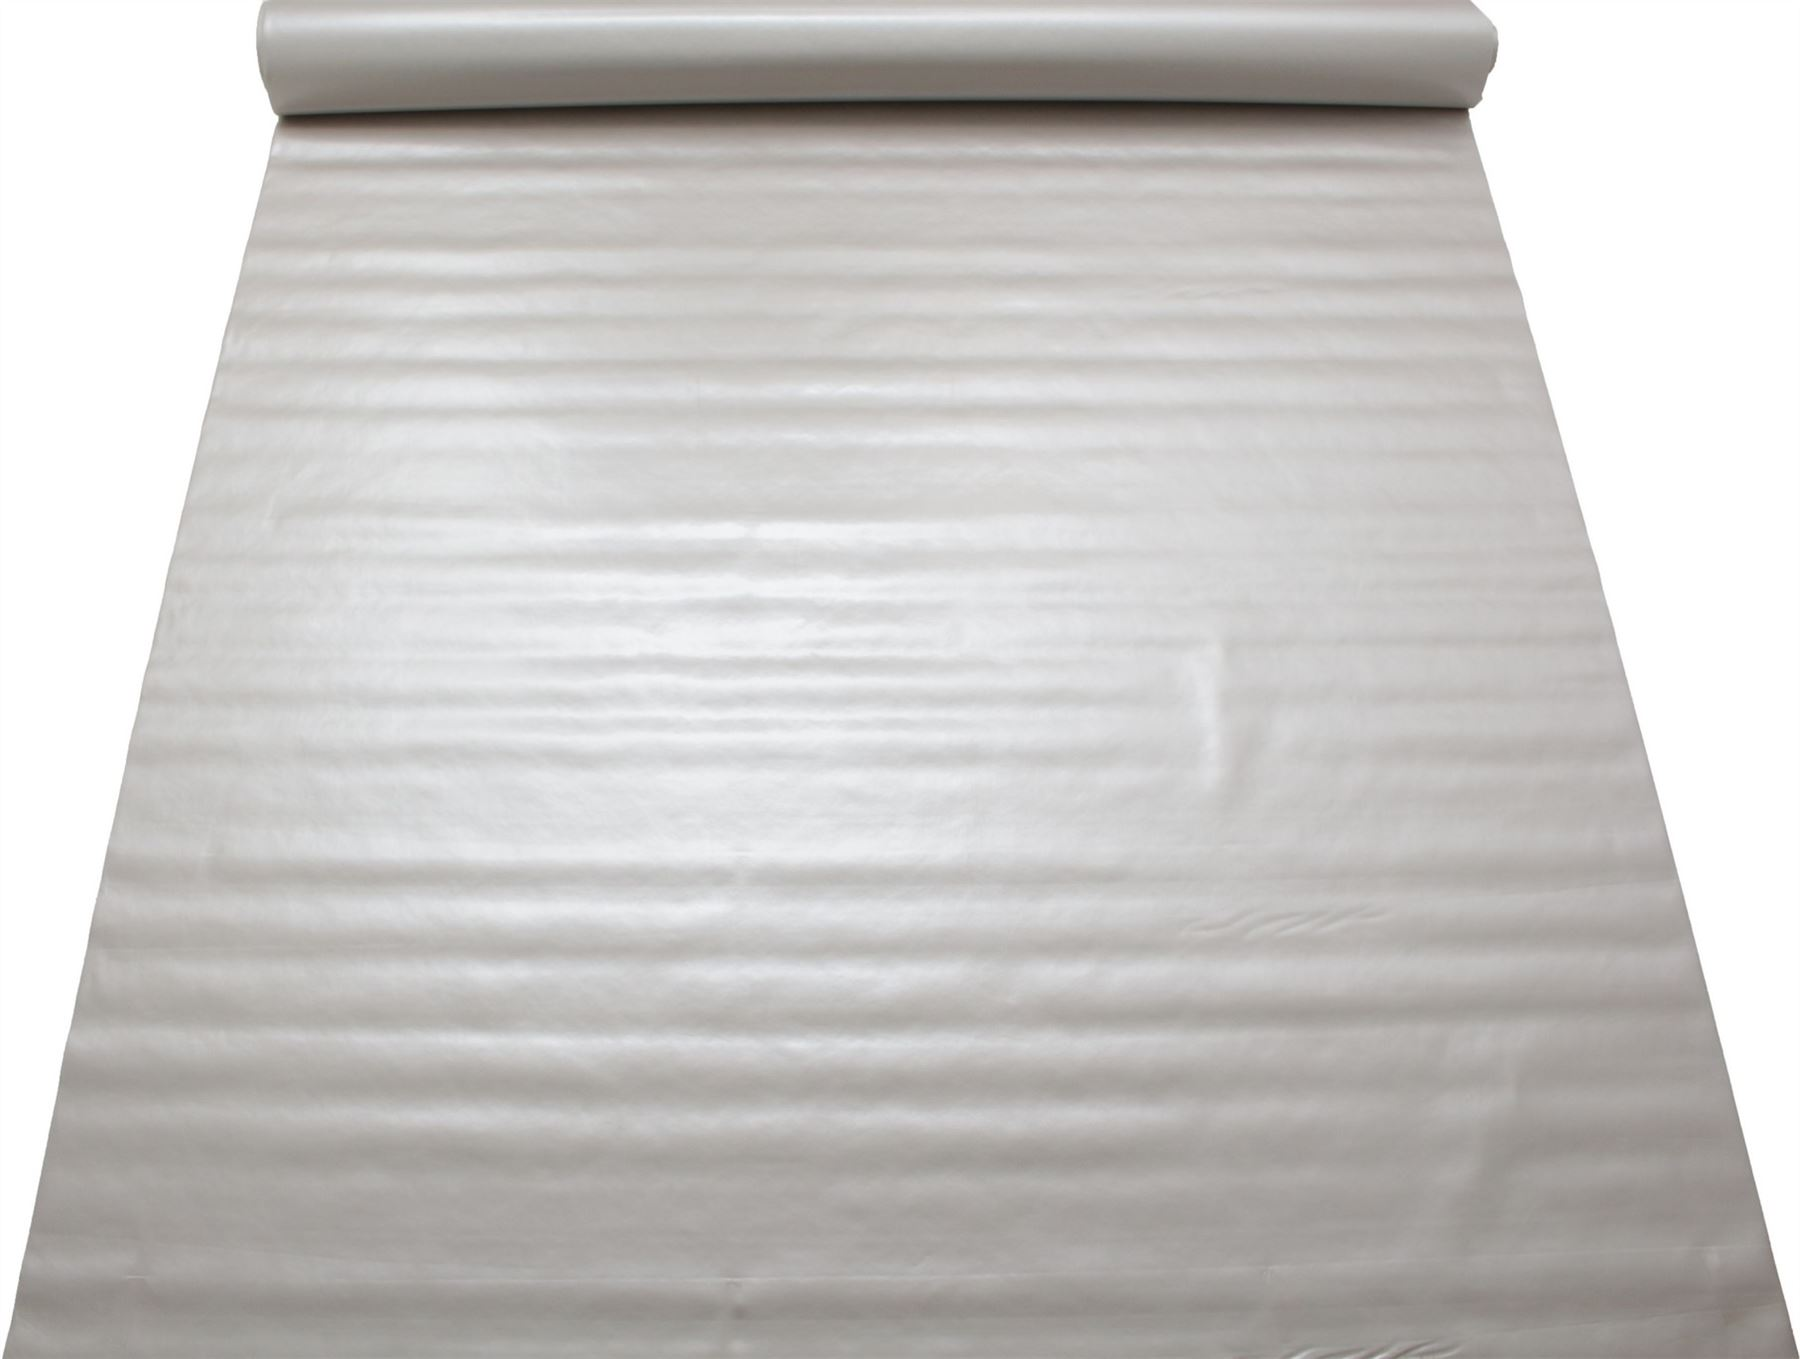 Plain Gloss Pvc Coated Tablecloth Covering Outdoor Garden